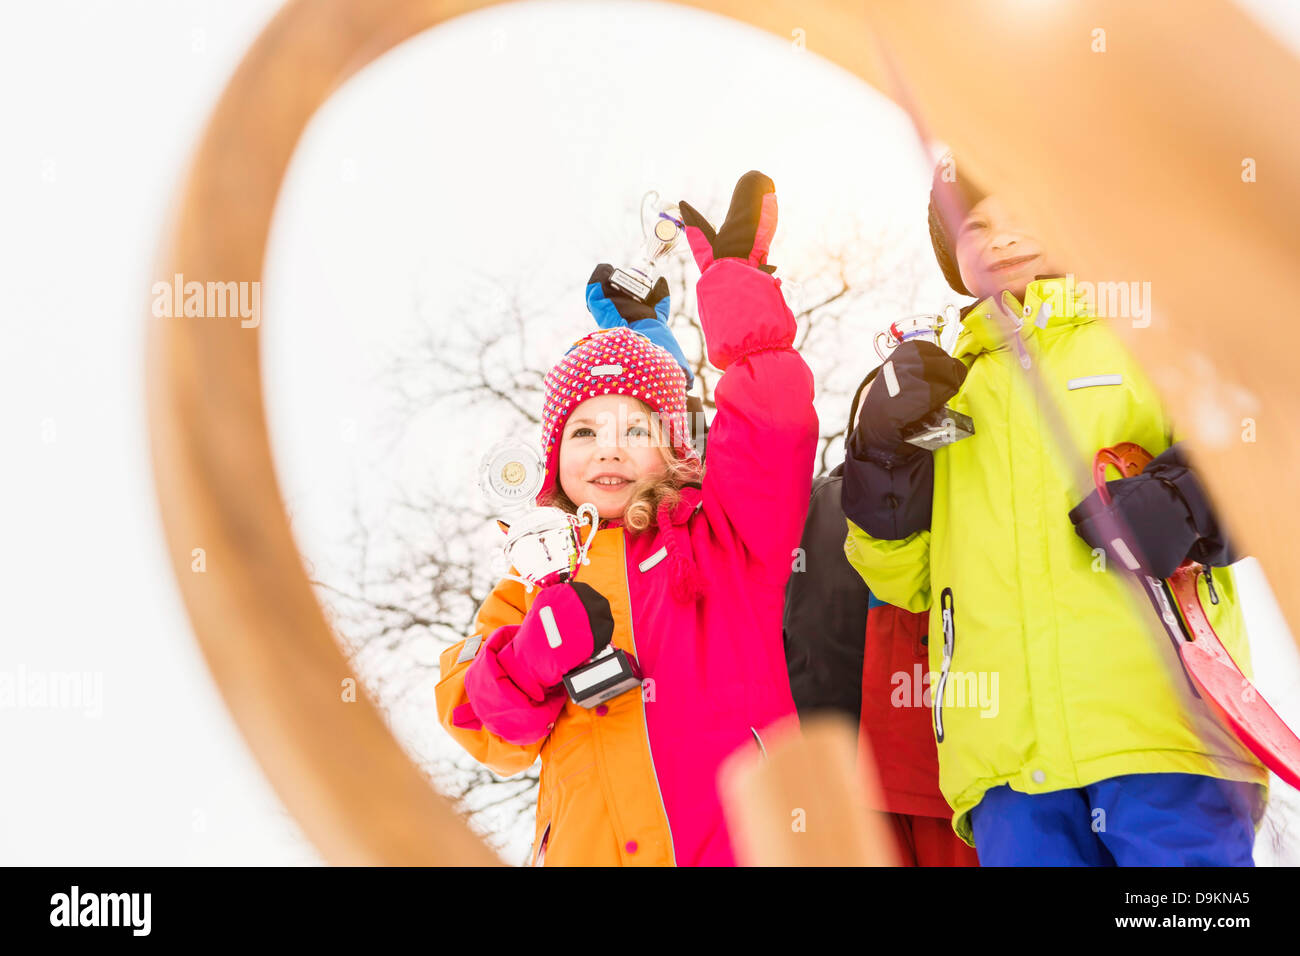 Girl in winter clothing holding trophy - Stock Image